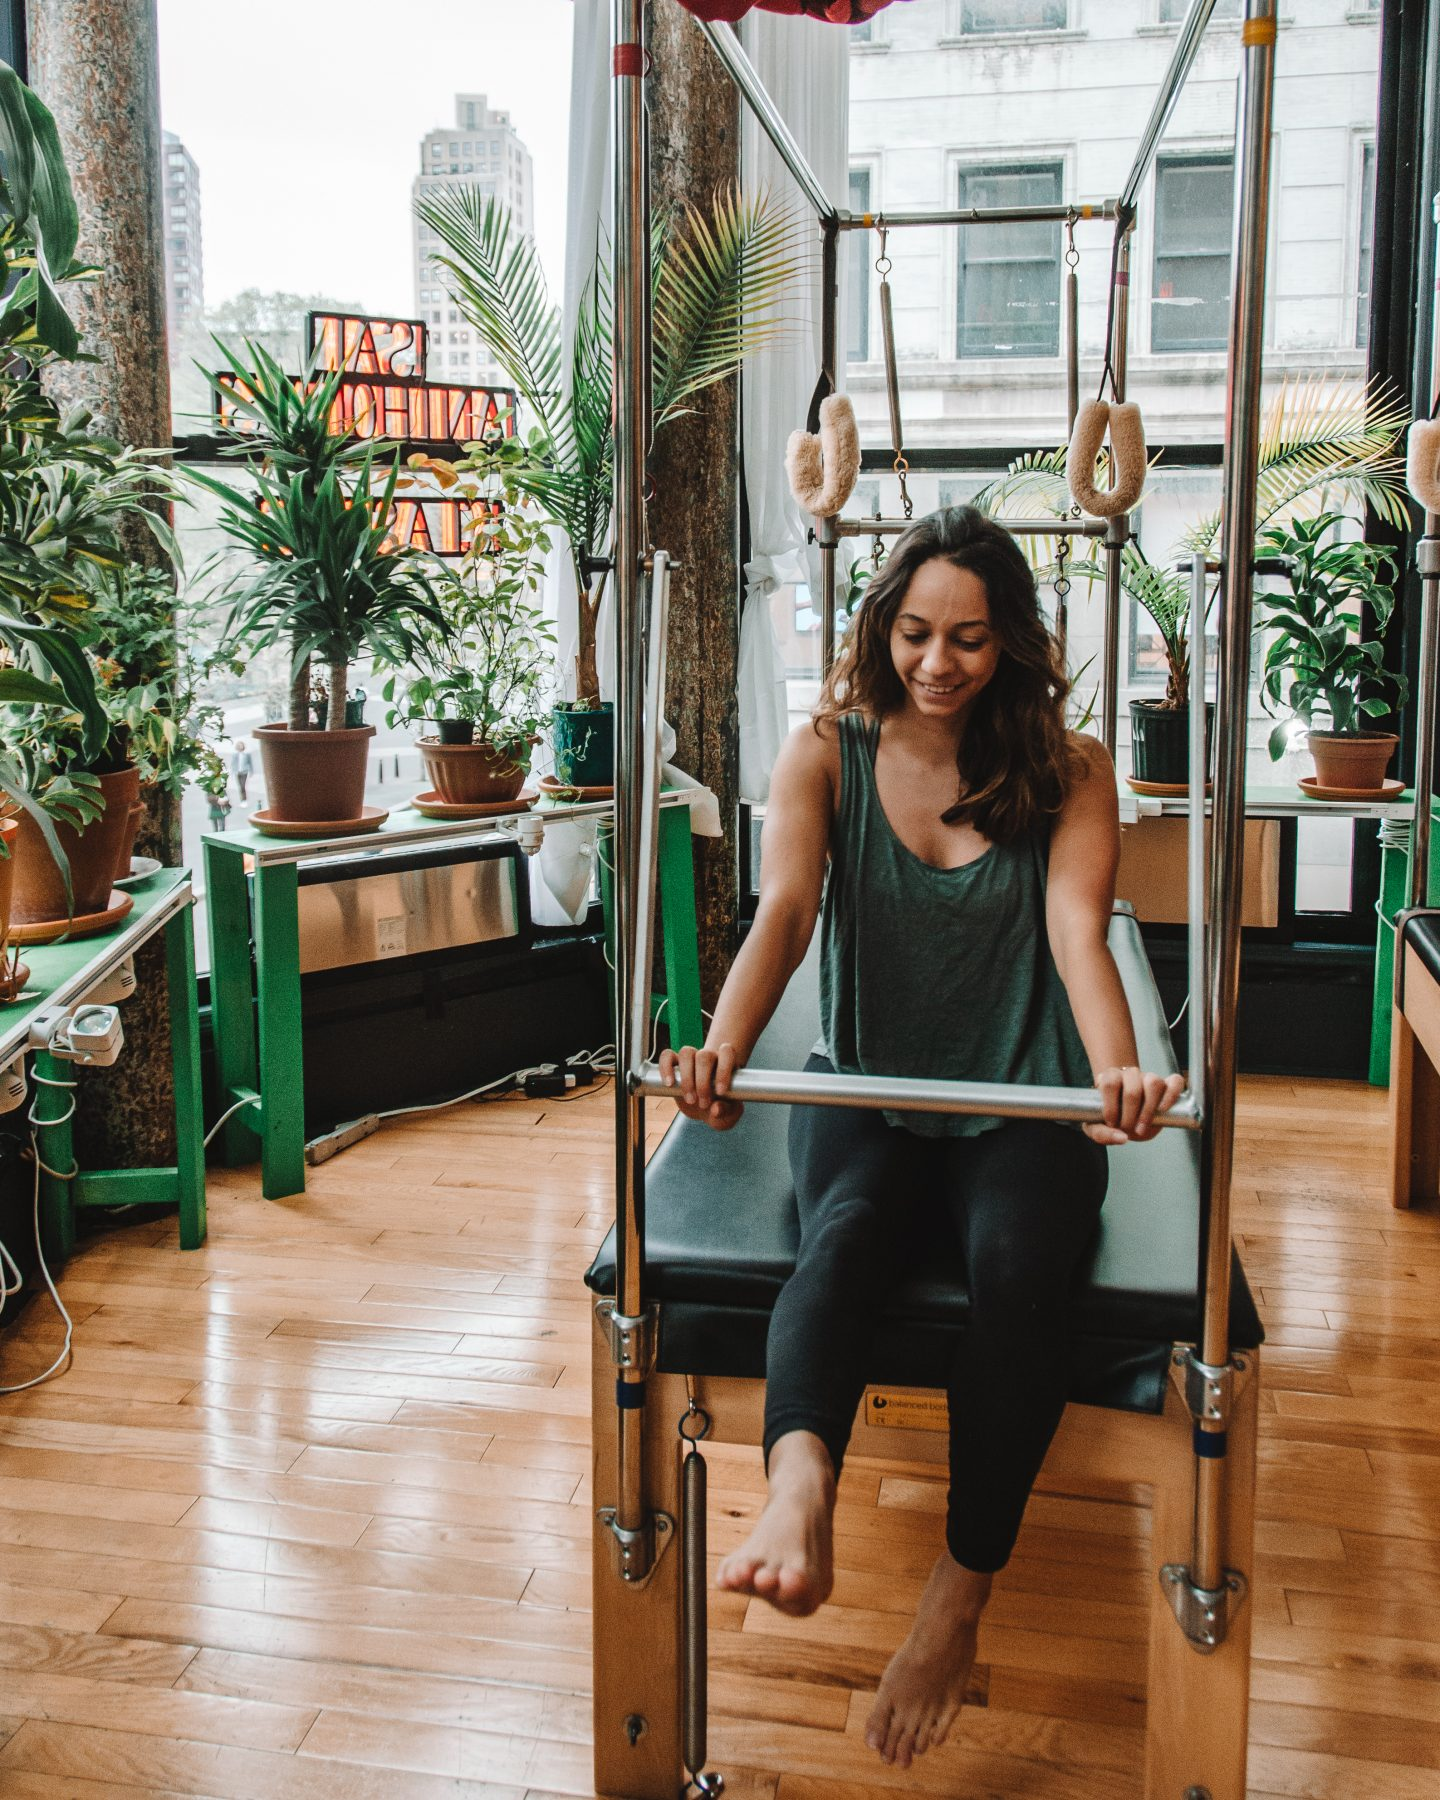 taking classpass classes to stay healthy while traveling